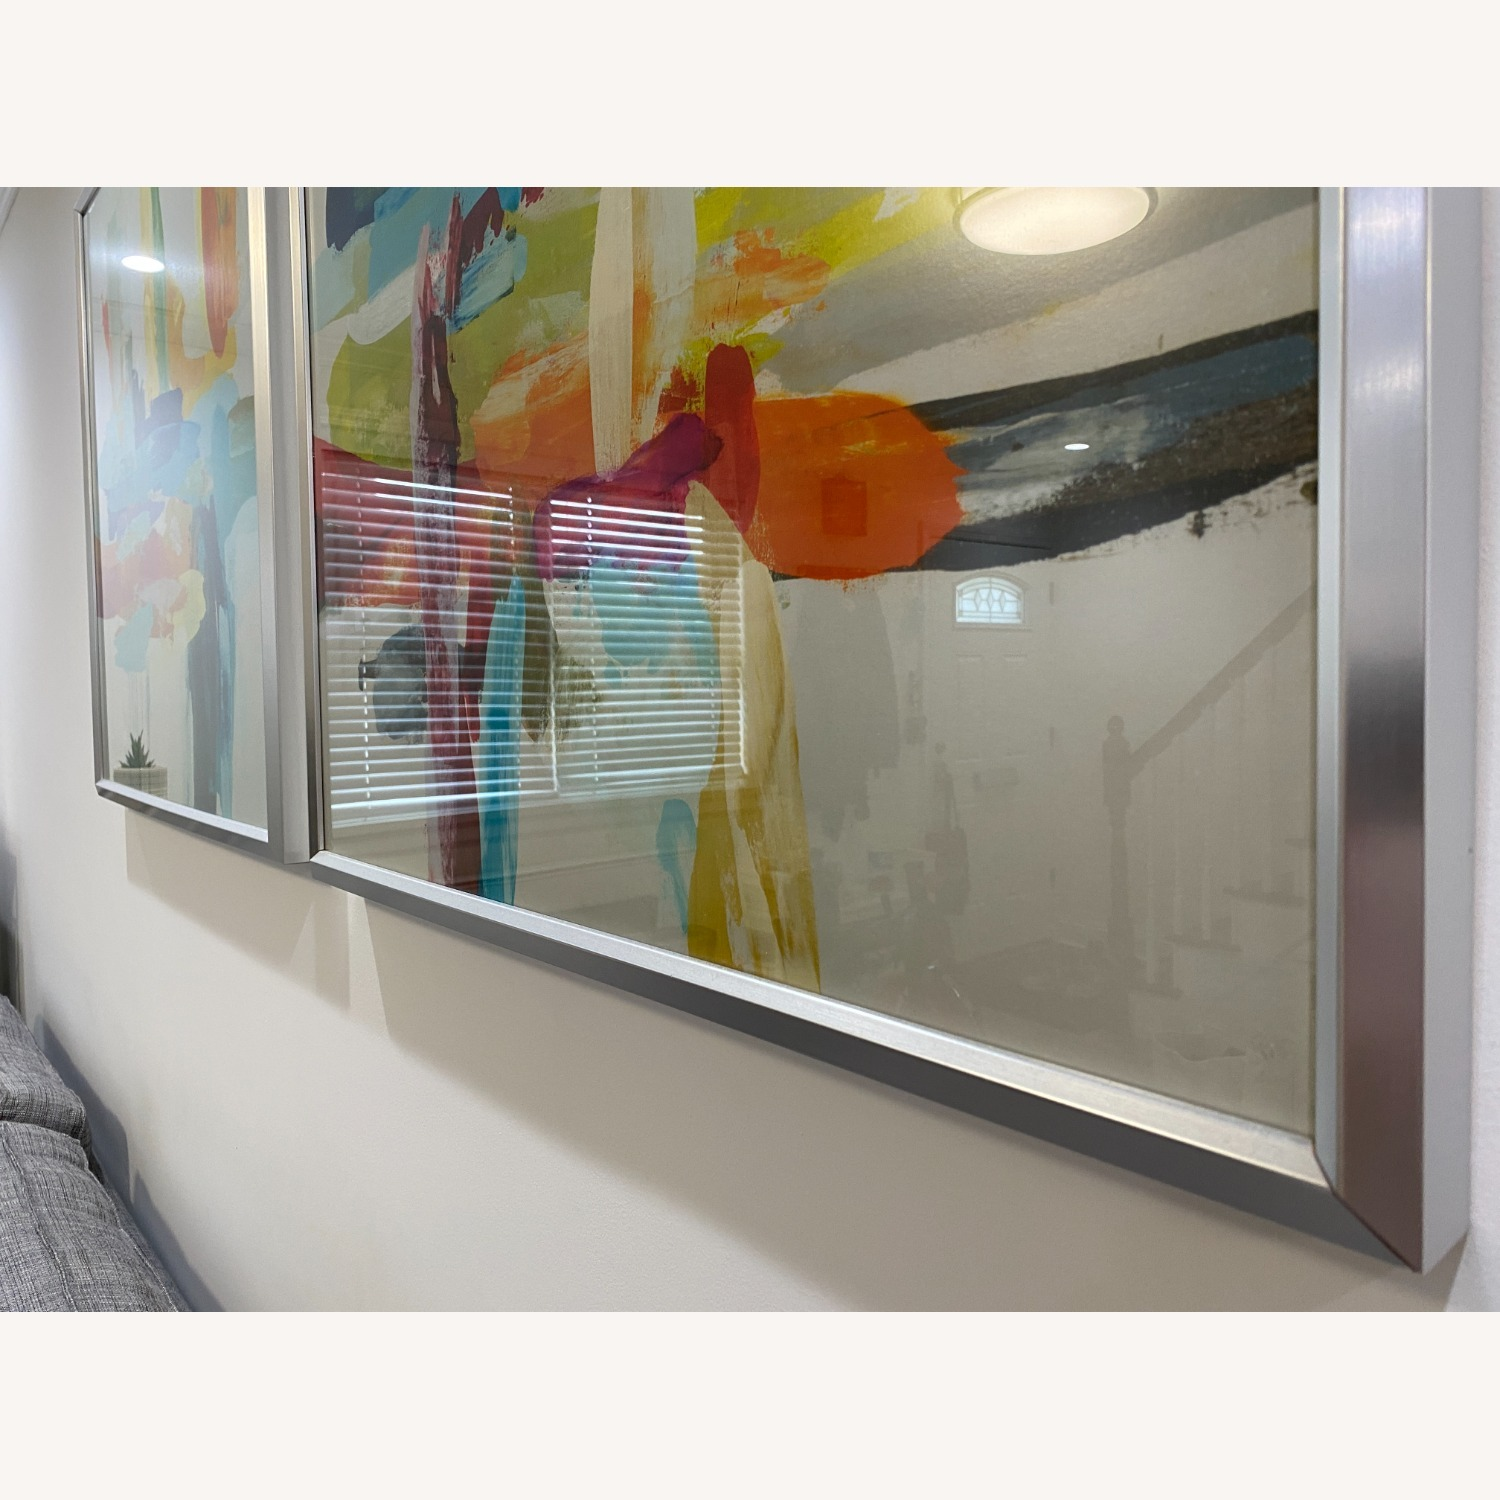 Z-Gallerie  Bold & Vibrant Wall Art: Synergy 1 & 2 - image-7